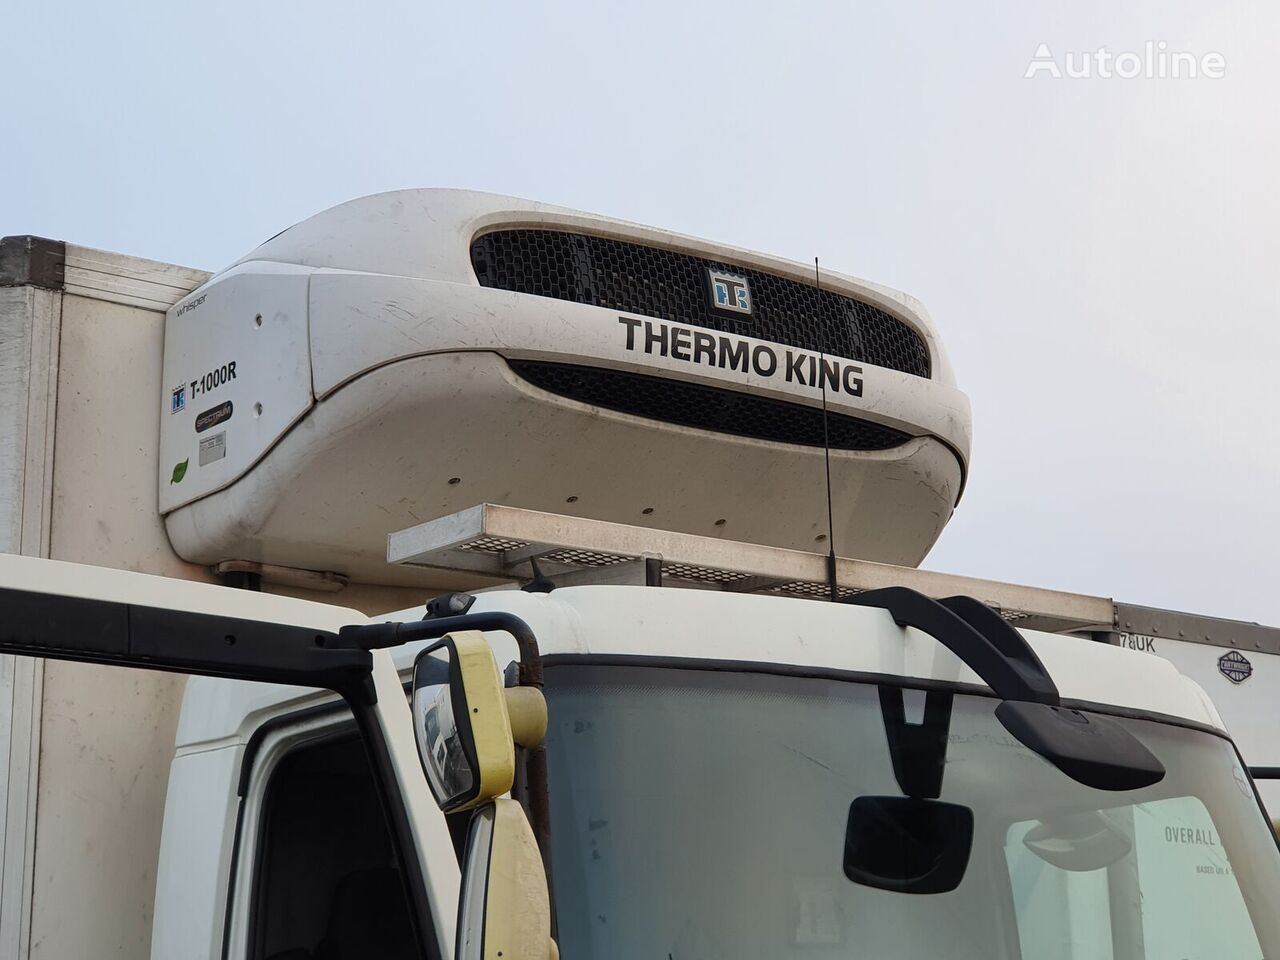 THERMO KING - T 1000R refrigeration unit